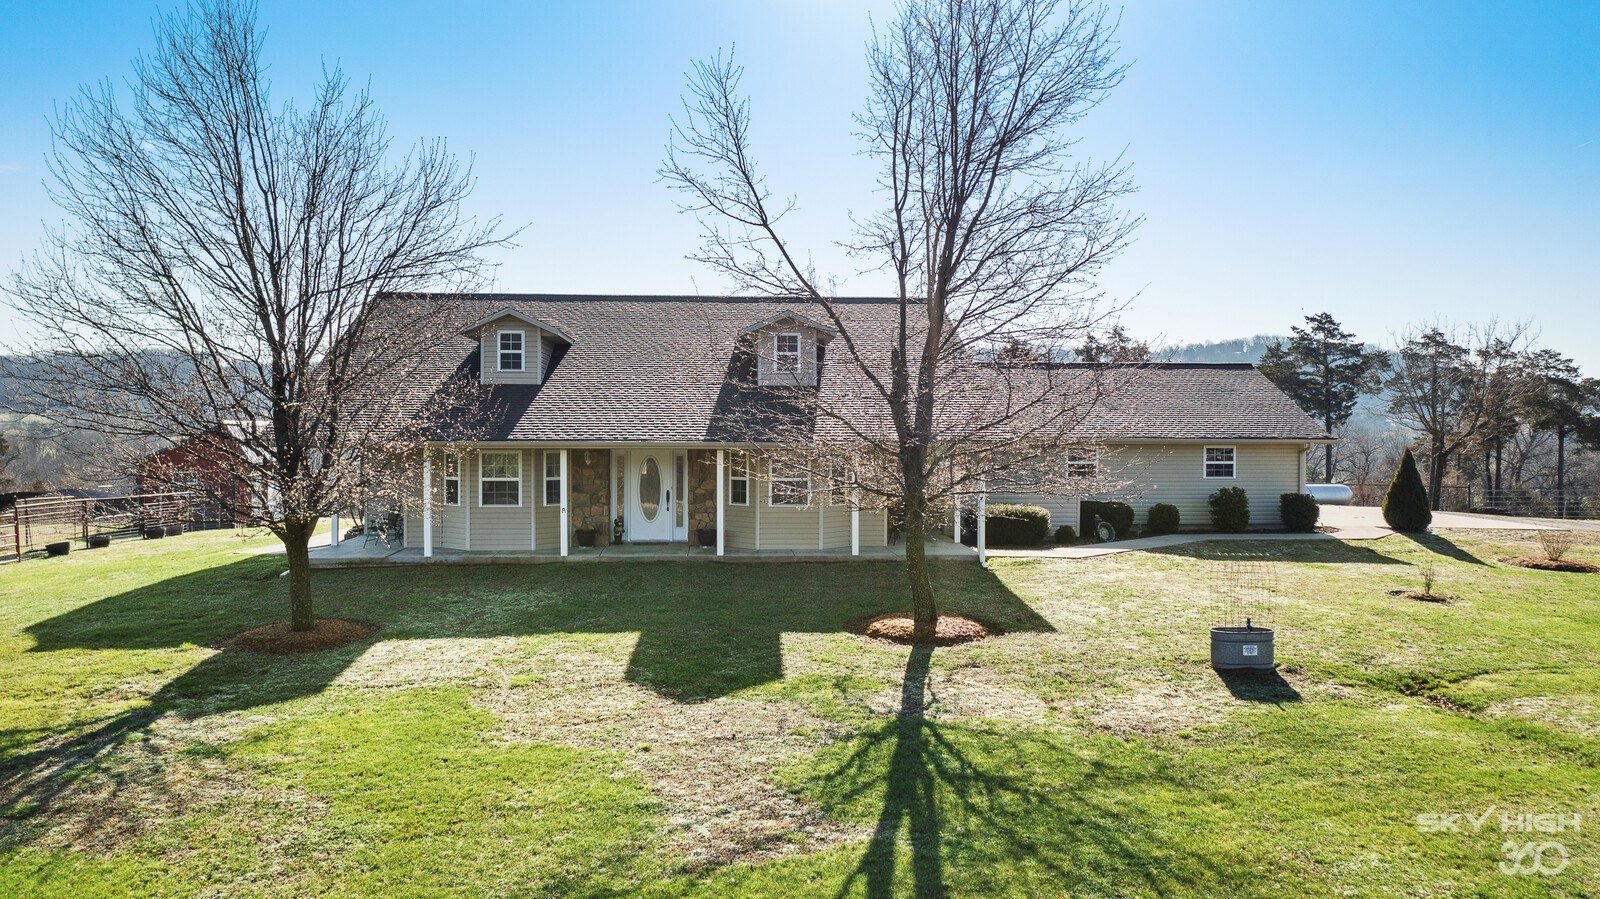 Country home with shop and 15 acres for sale in Washburn, MO